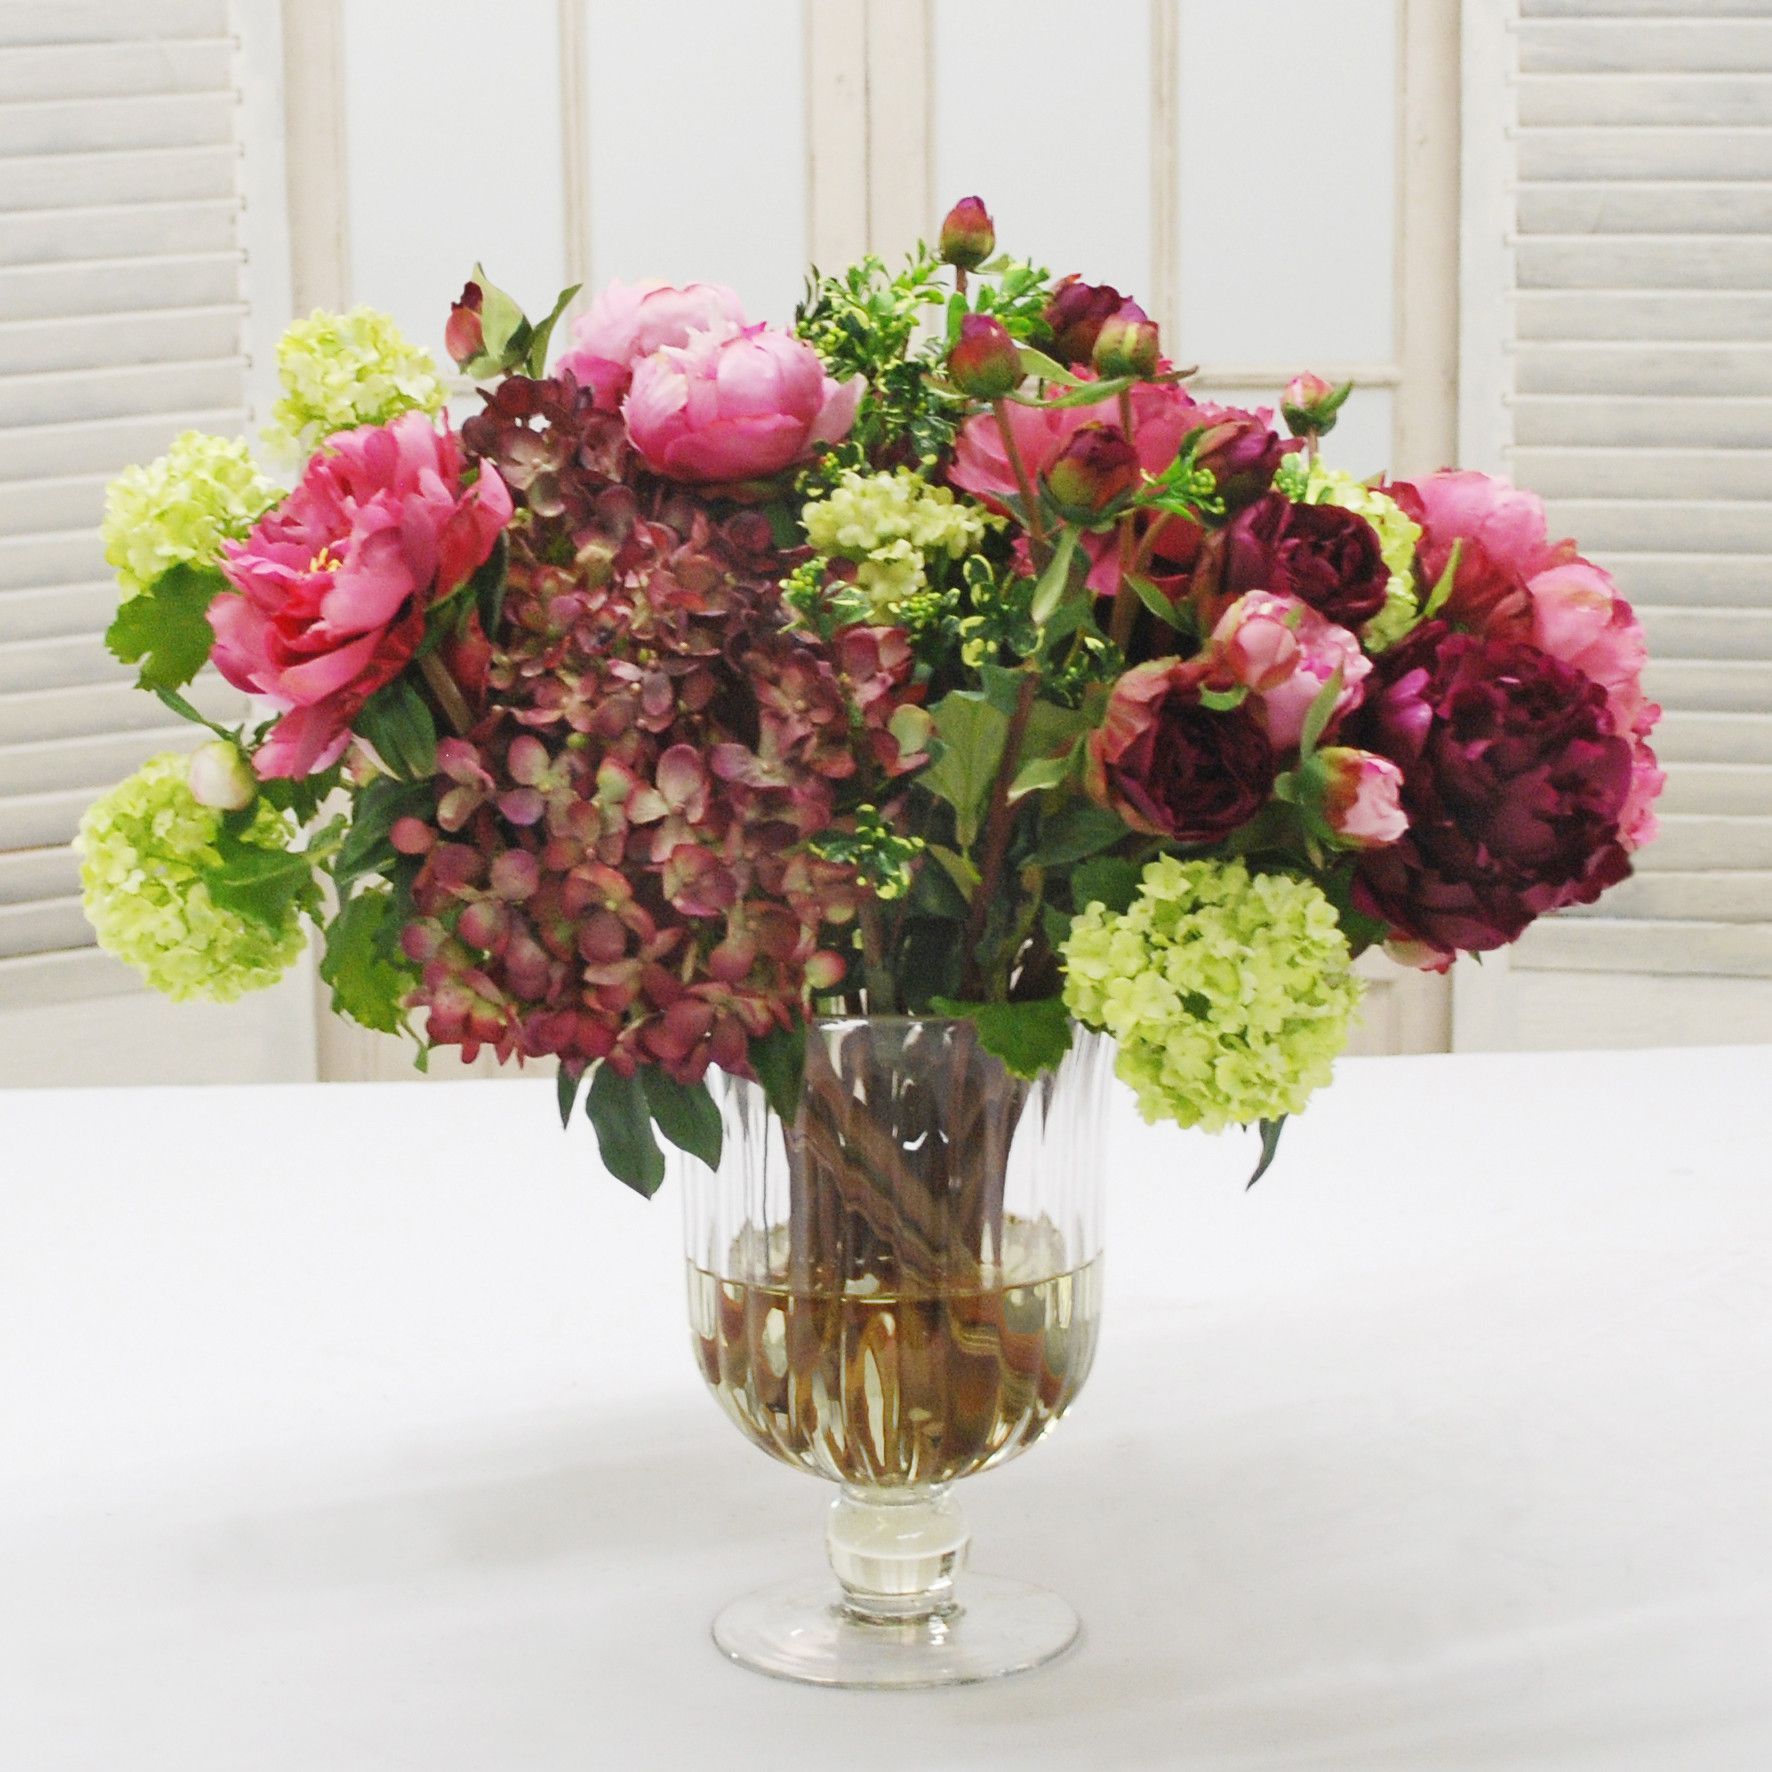 Mix floral in wine glass vase whd022 ohgr flowers mix floral in wine glass vase whd022 ohgr reviewsmspy